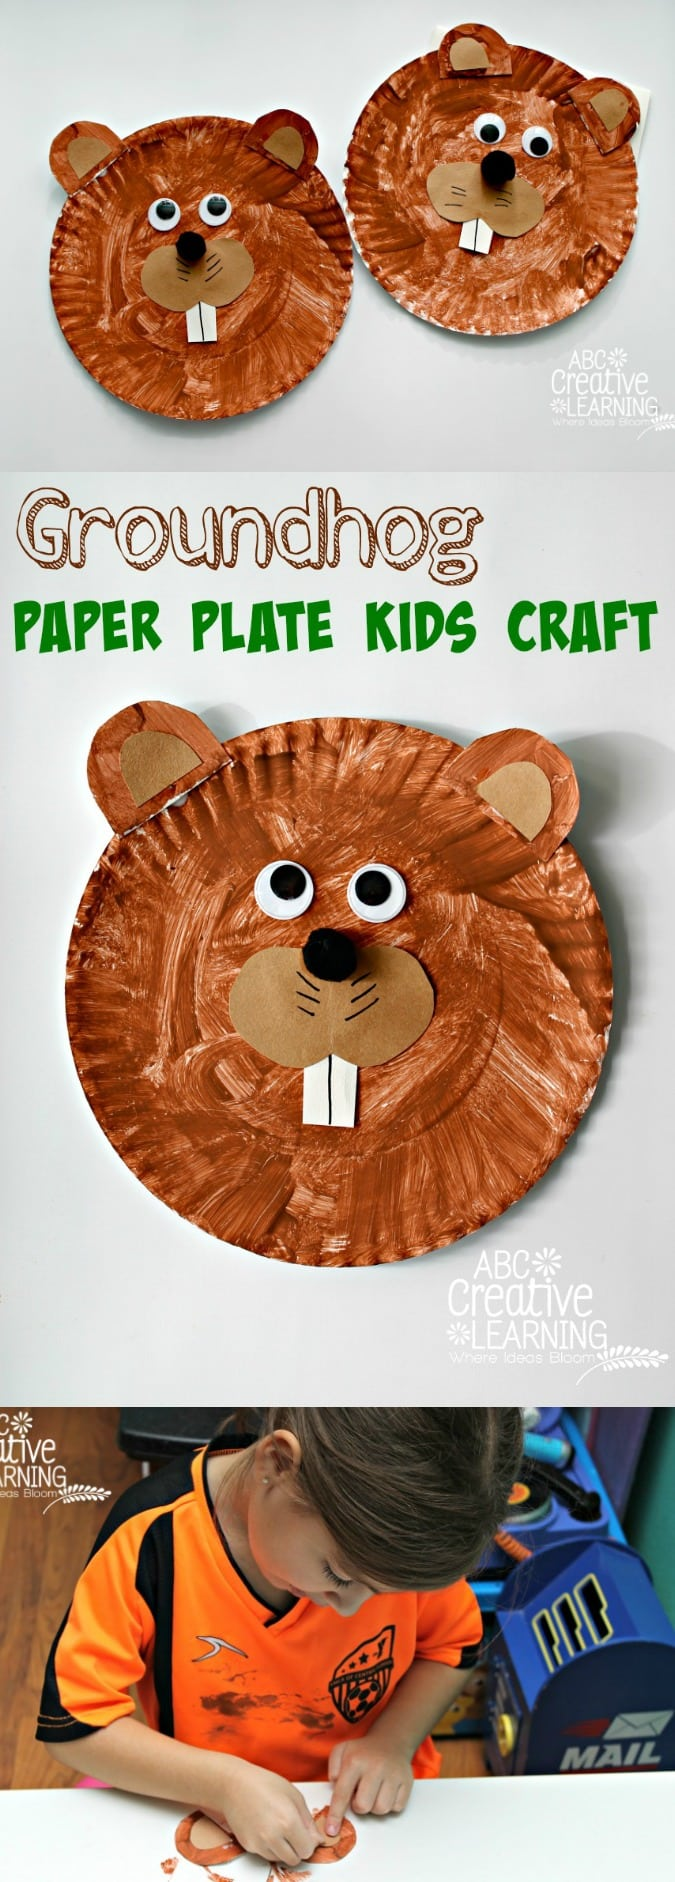 A fun and easy Groundhog Paper Plate Craft for kids - simplytodaylife.com